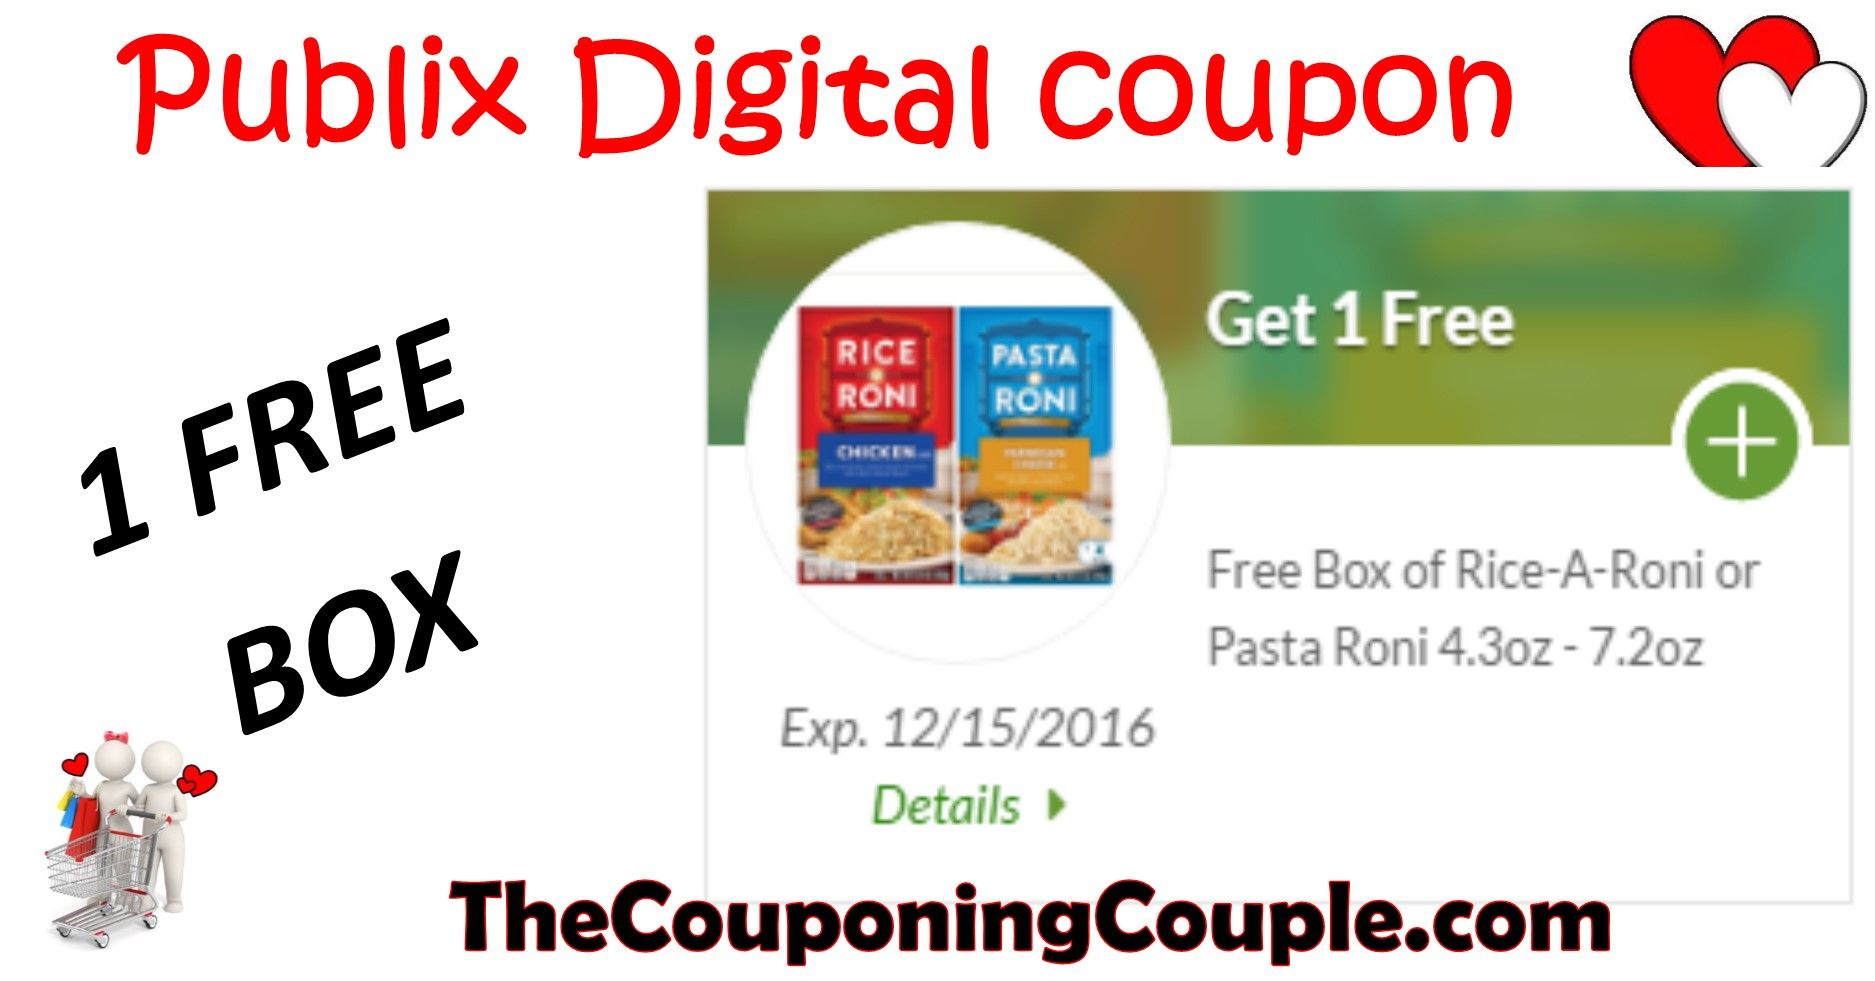 Free Rice A Roni Or Pasta Roni At Publix With Freebie Digital Coupon Pasta Roni Free Rice Digital Coupons